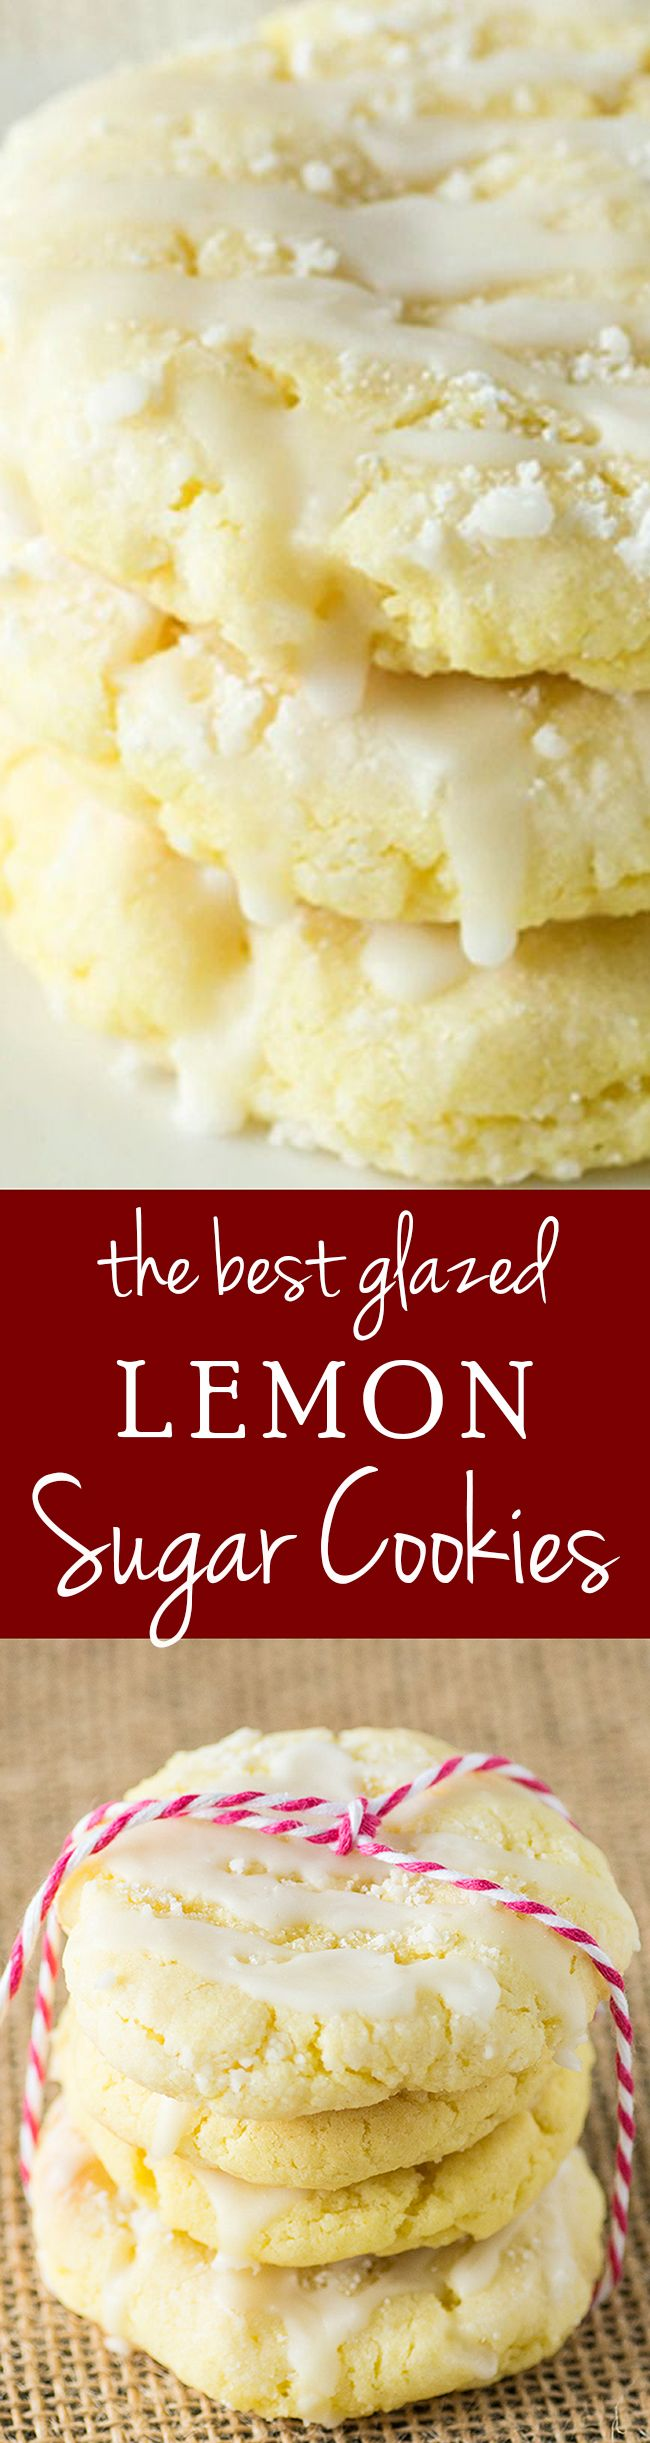 Chewy glazed Lemon Sugar Cookies.  These cookies have amazing reviews and continue to be a top pinterest winner! #cookie #recipe #lemon #holiday